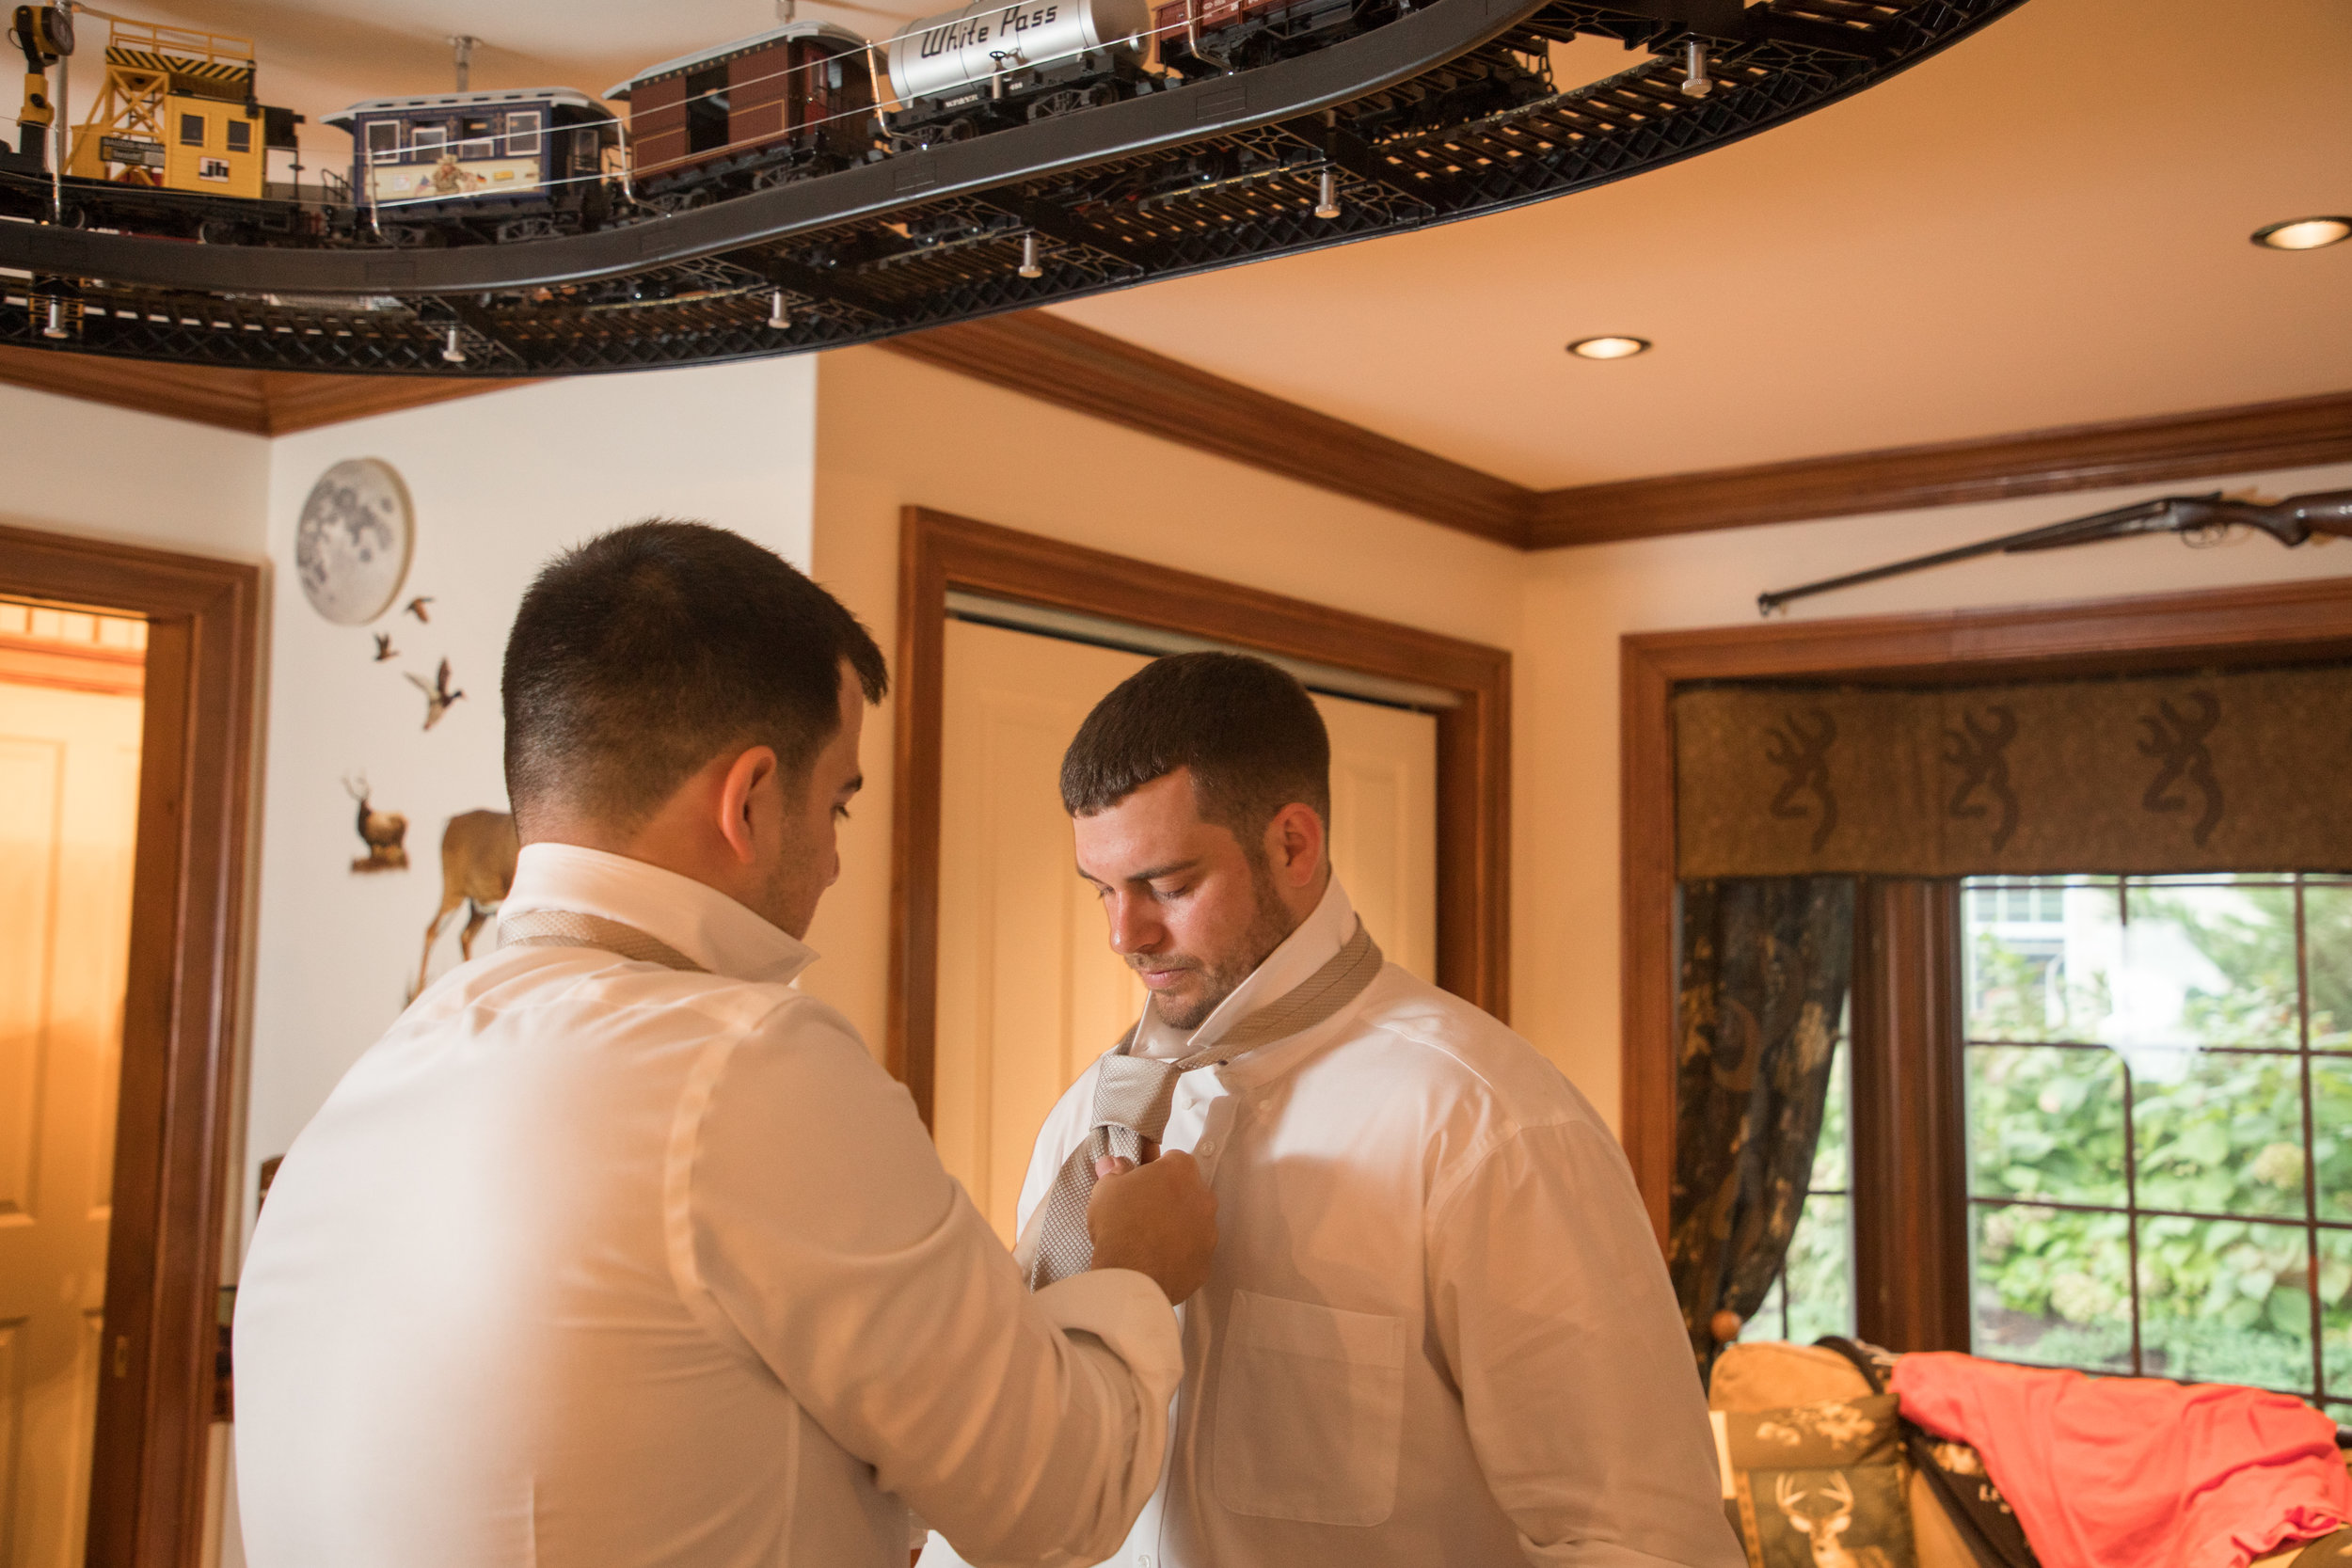 A groomsman fixes the groom's tie as they get ready before the start of the wedding ceremony in Milford Delaware.